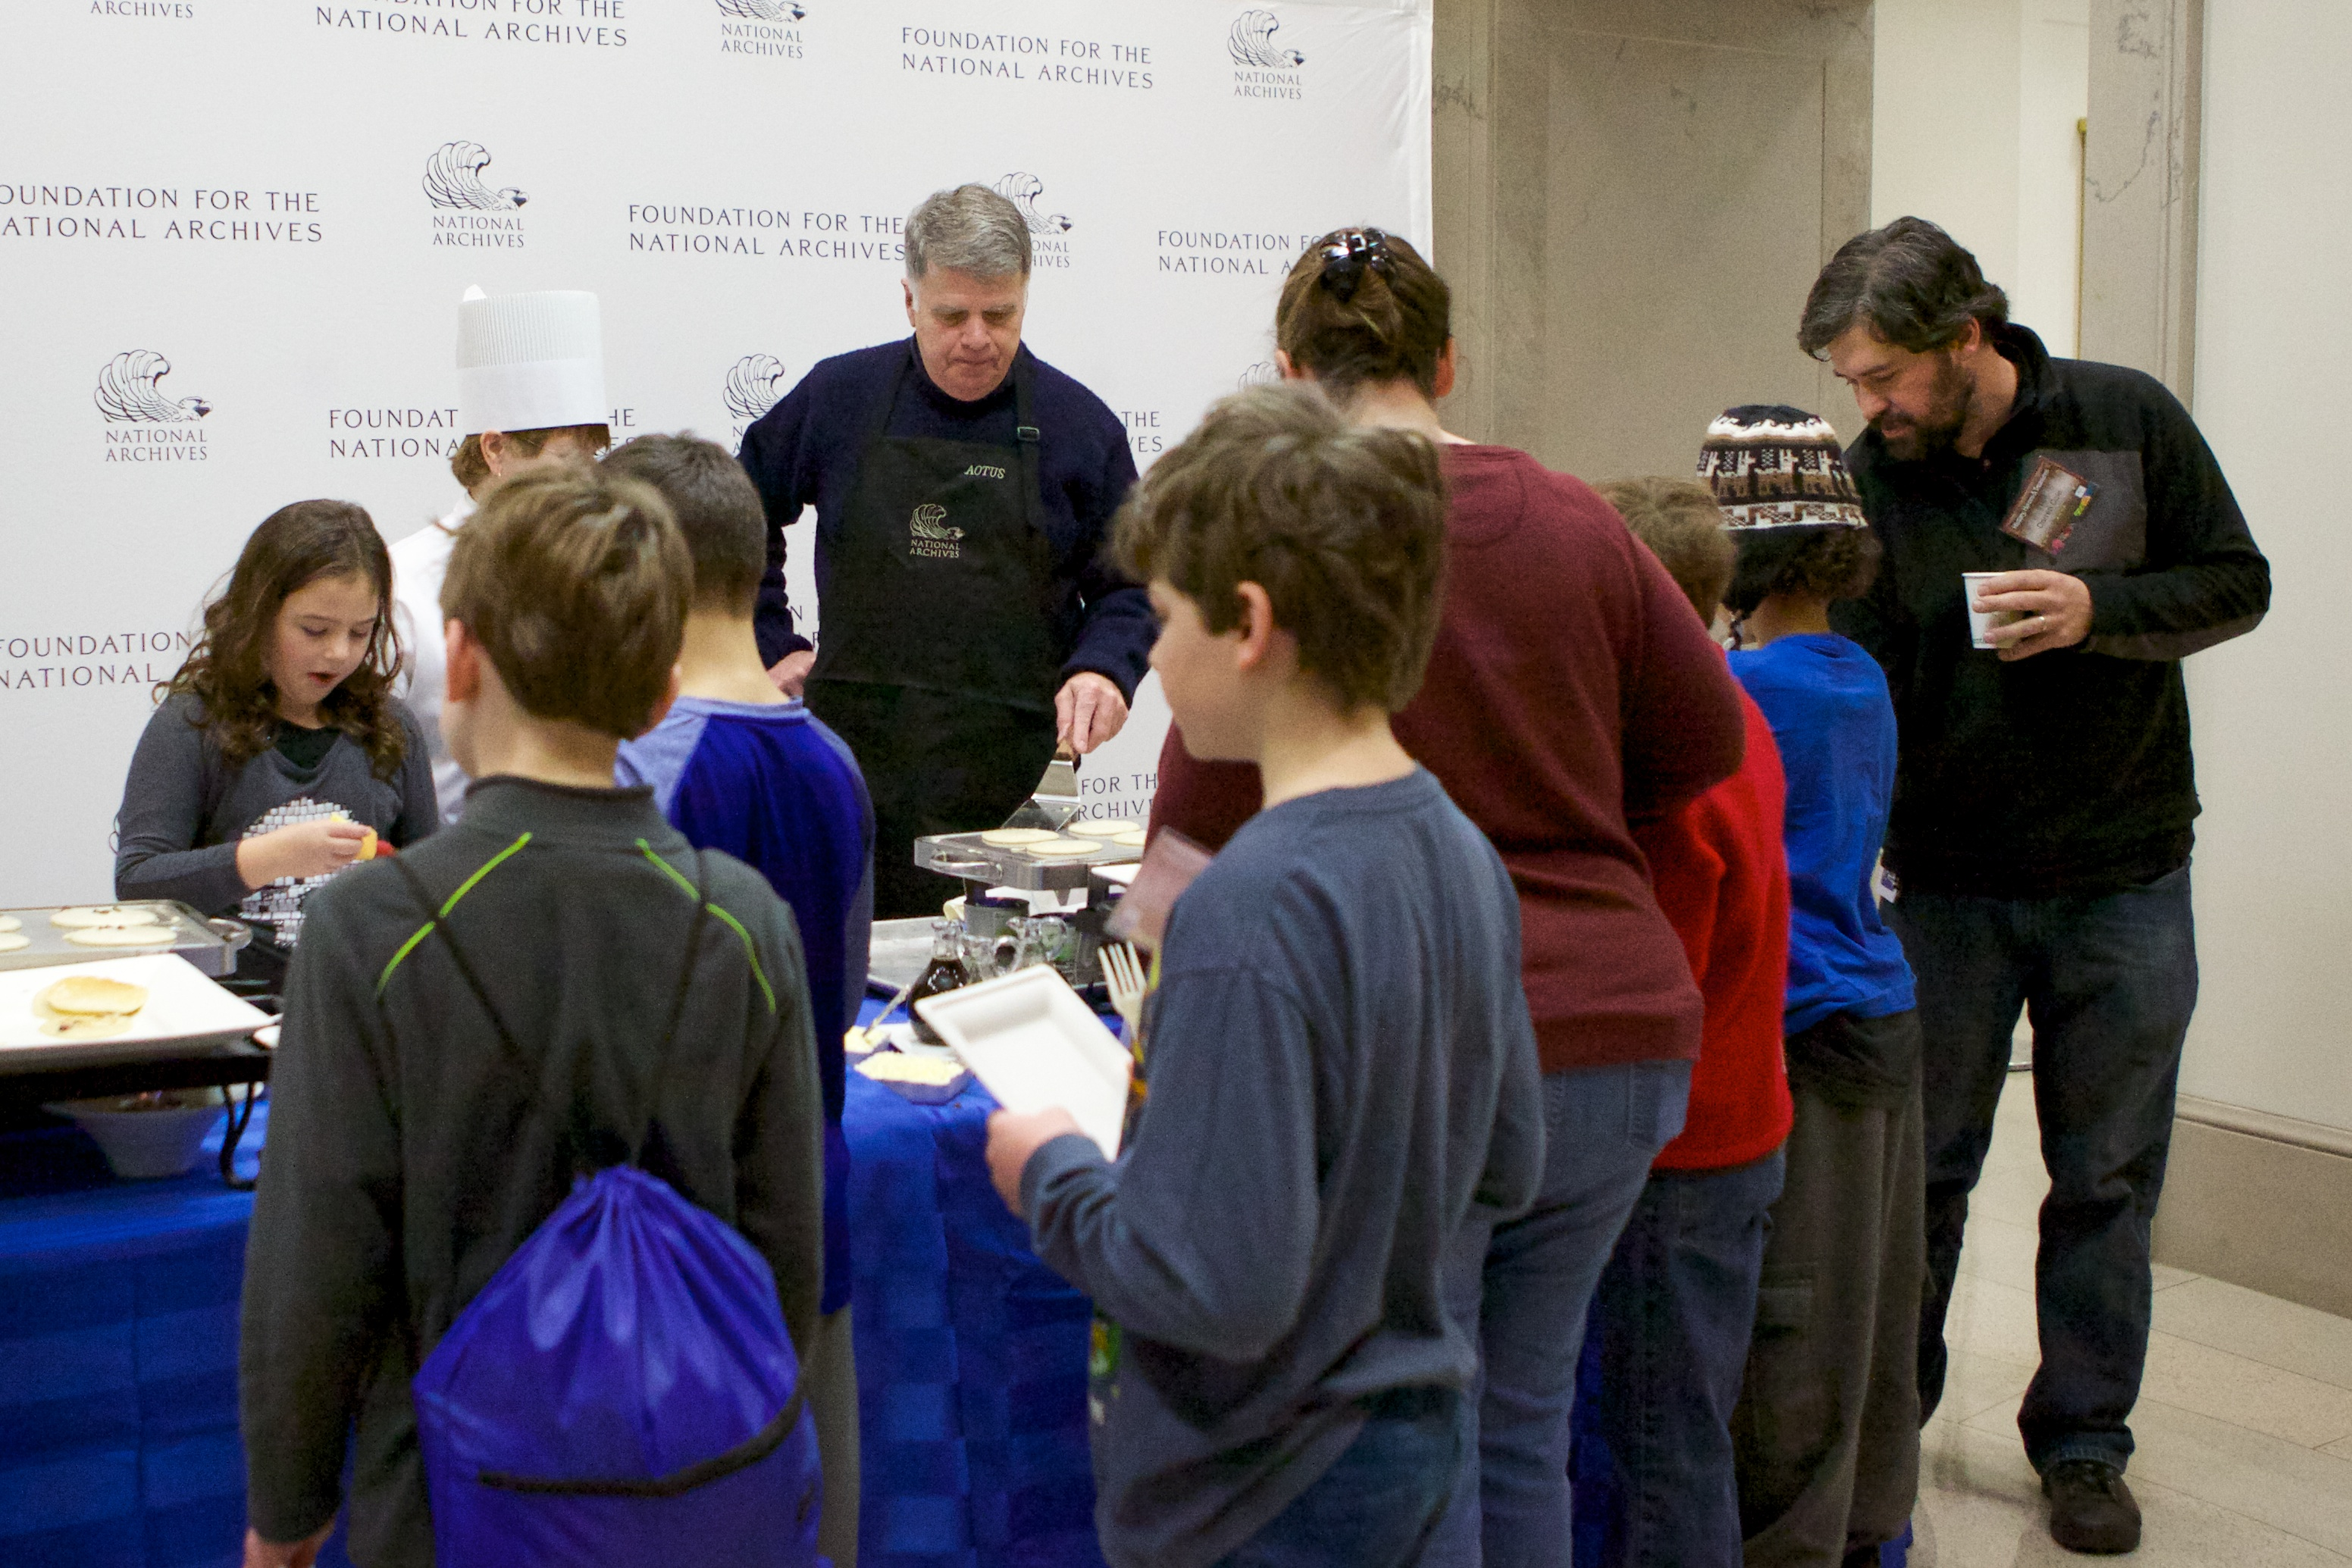 In the morning, sleepover guests enjoyed pancakes flipped by our very own Archivist David S. Ferriero.